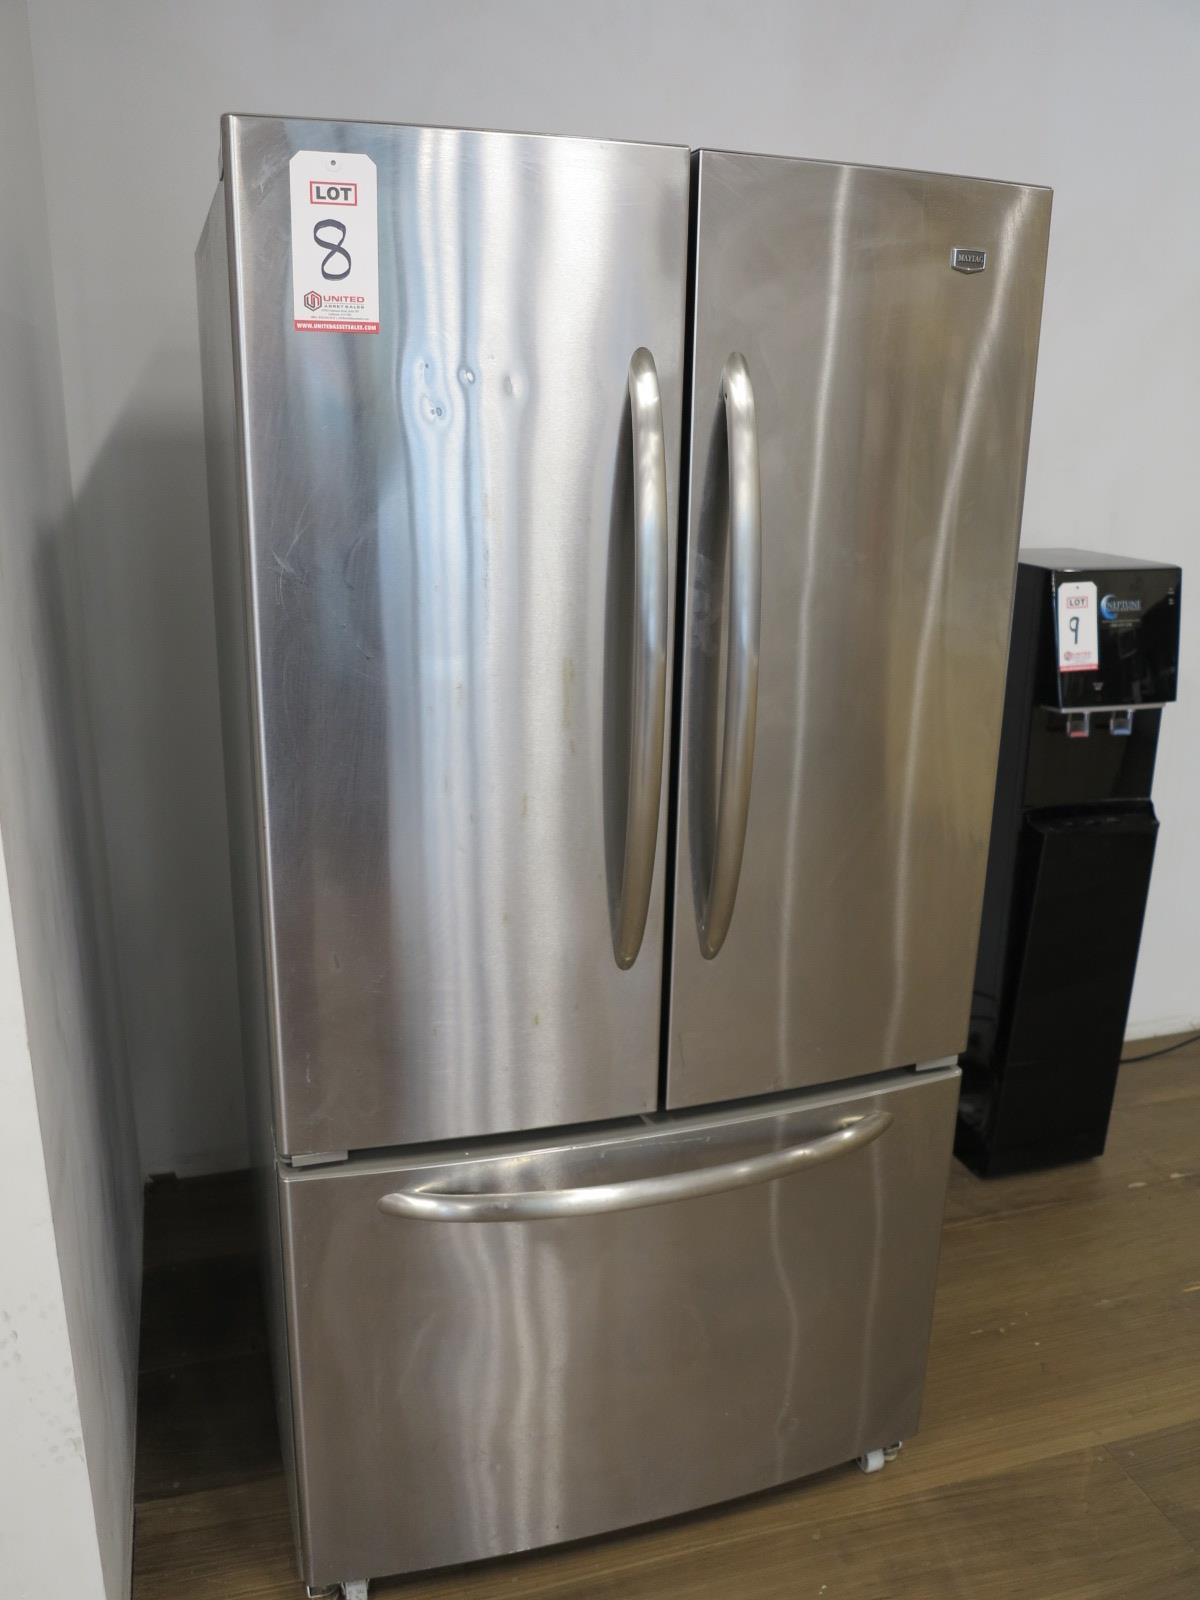 Lot 8 - MAYTAG STAINLESS STEEL REFRIGERATOR/FREEZER